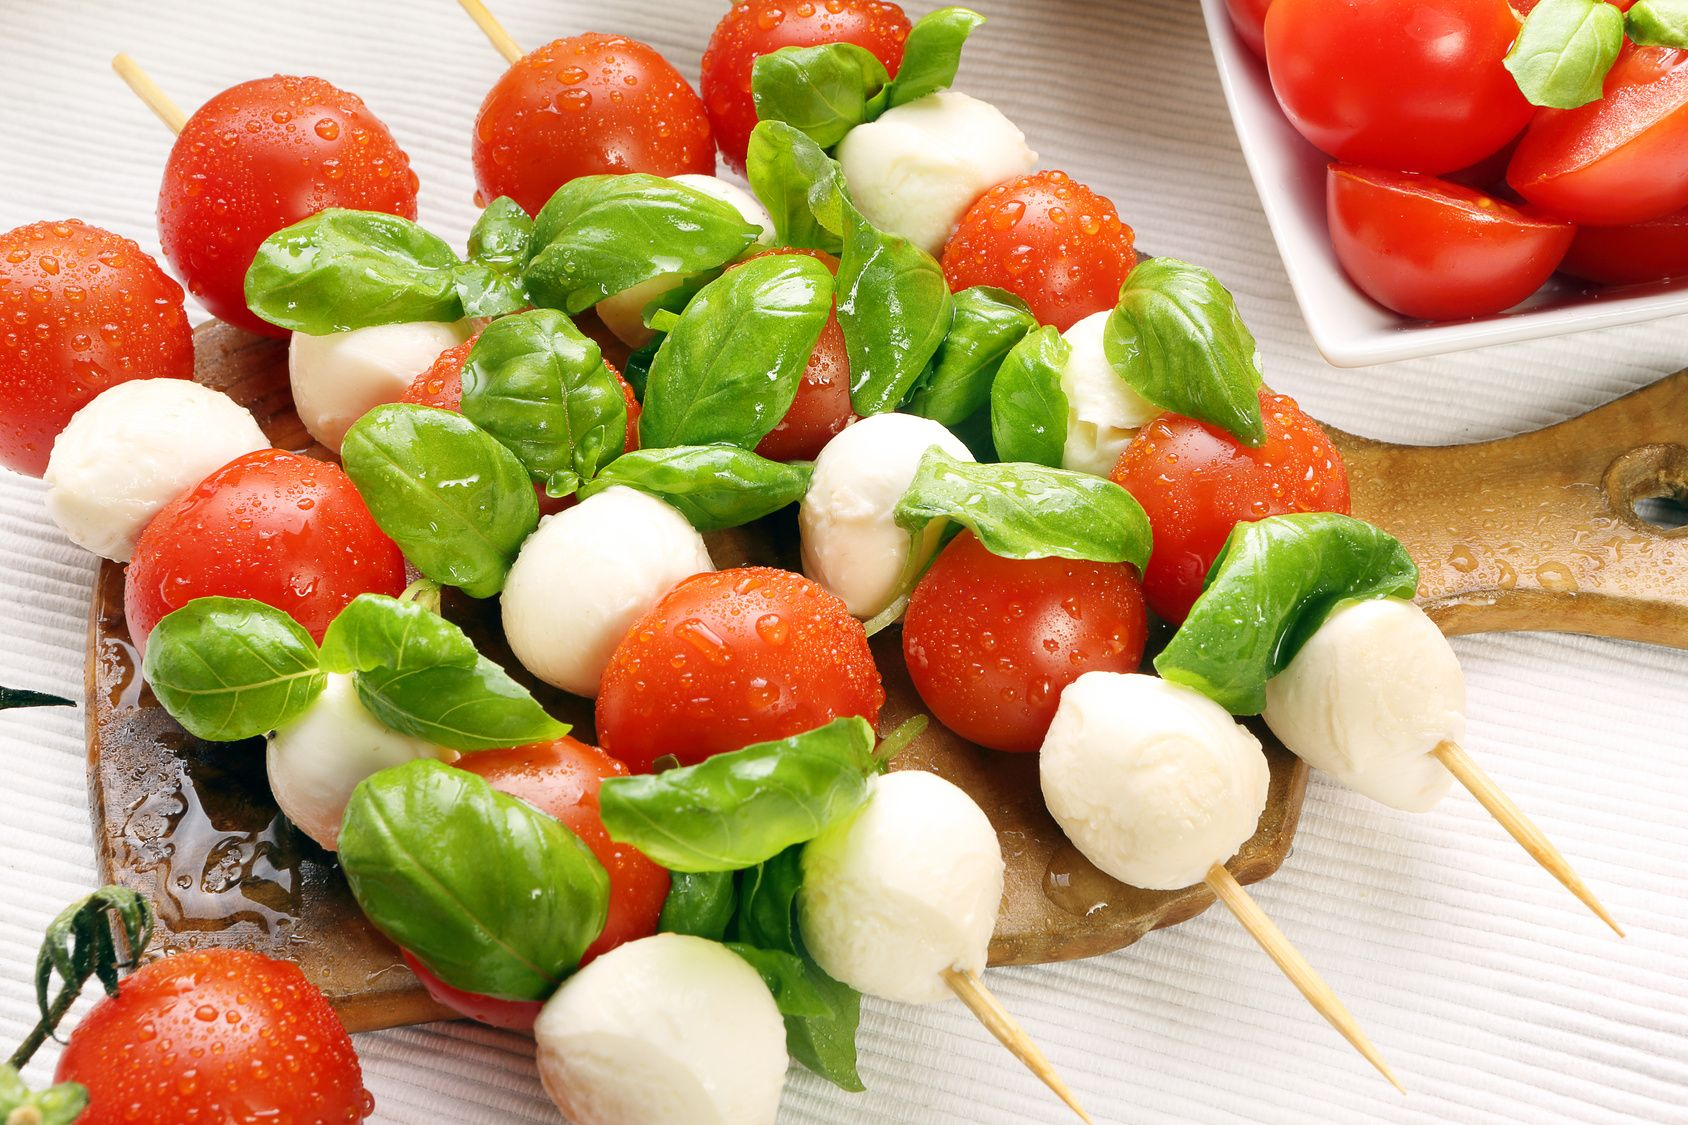 Caprese salad. Skewers with tomato and mozzarella with basil